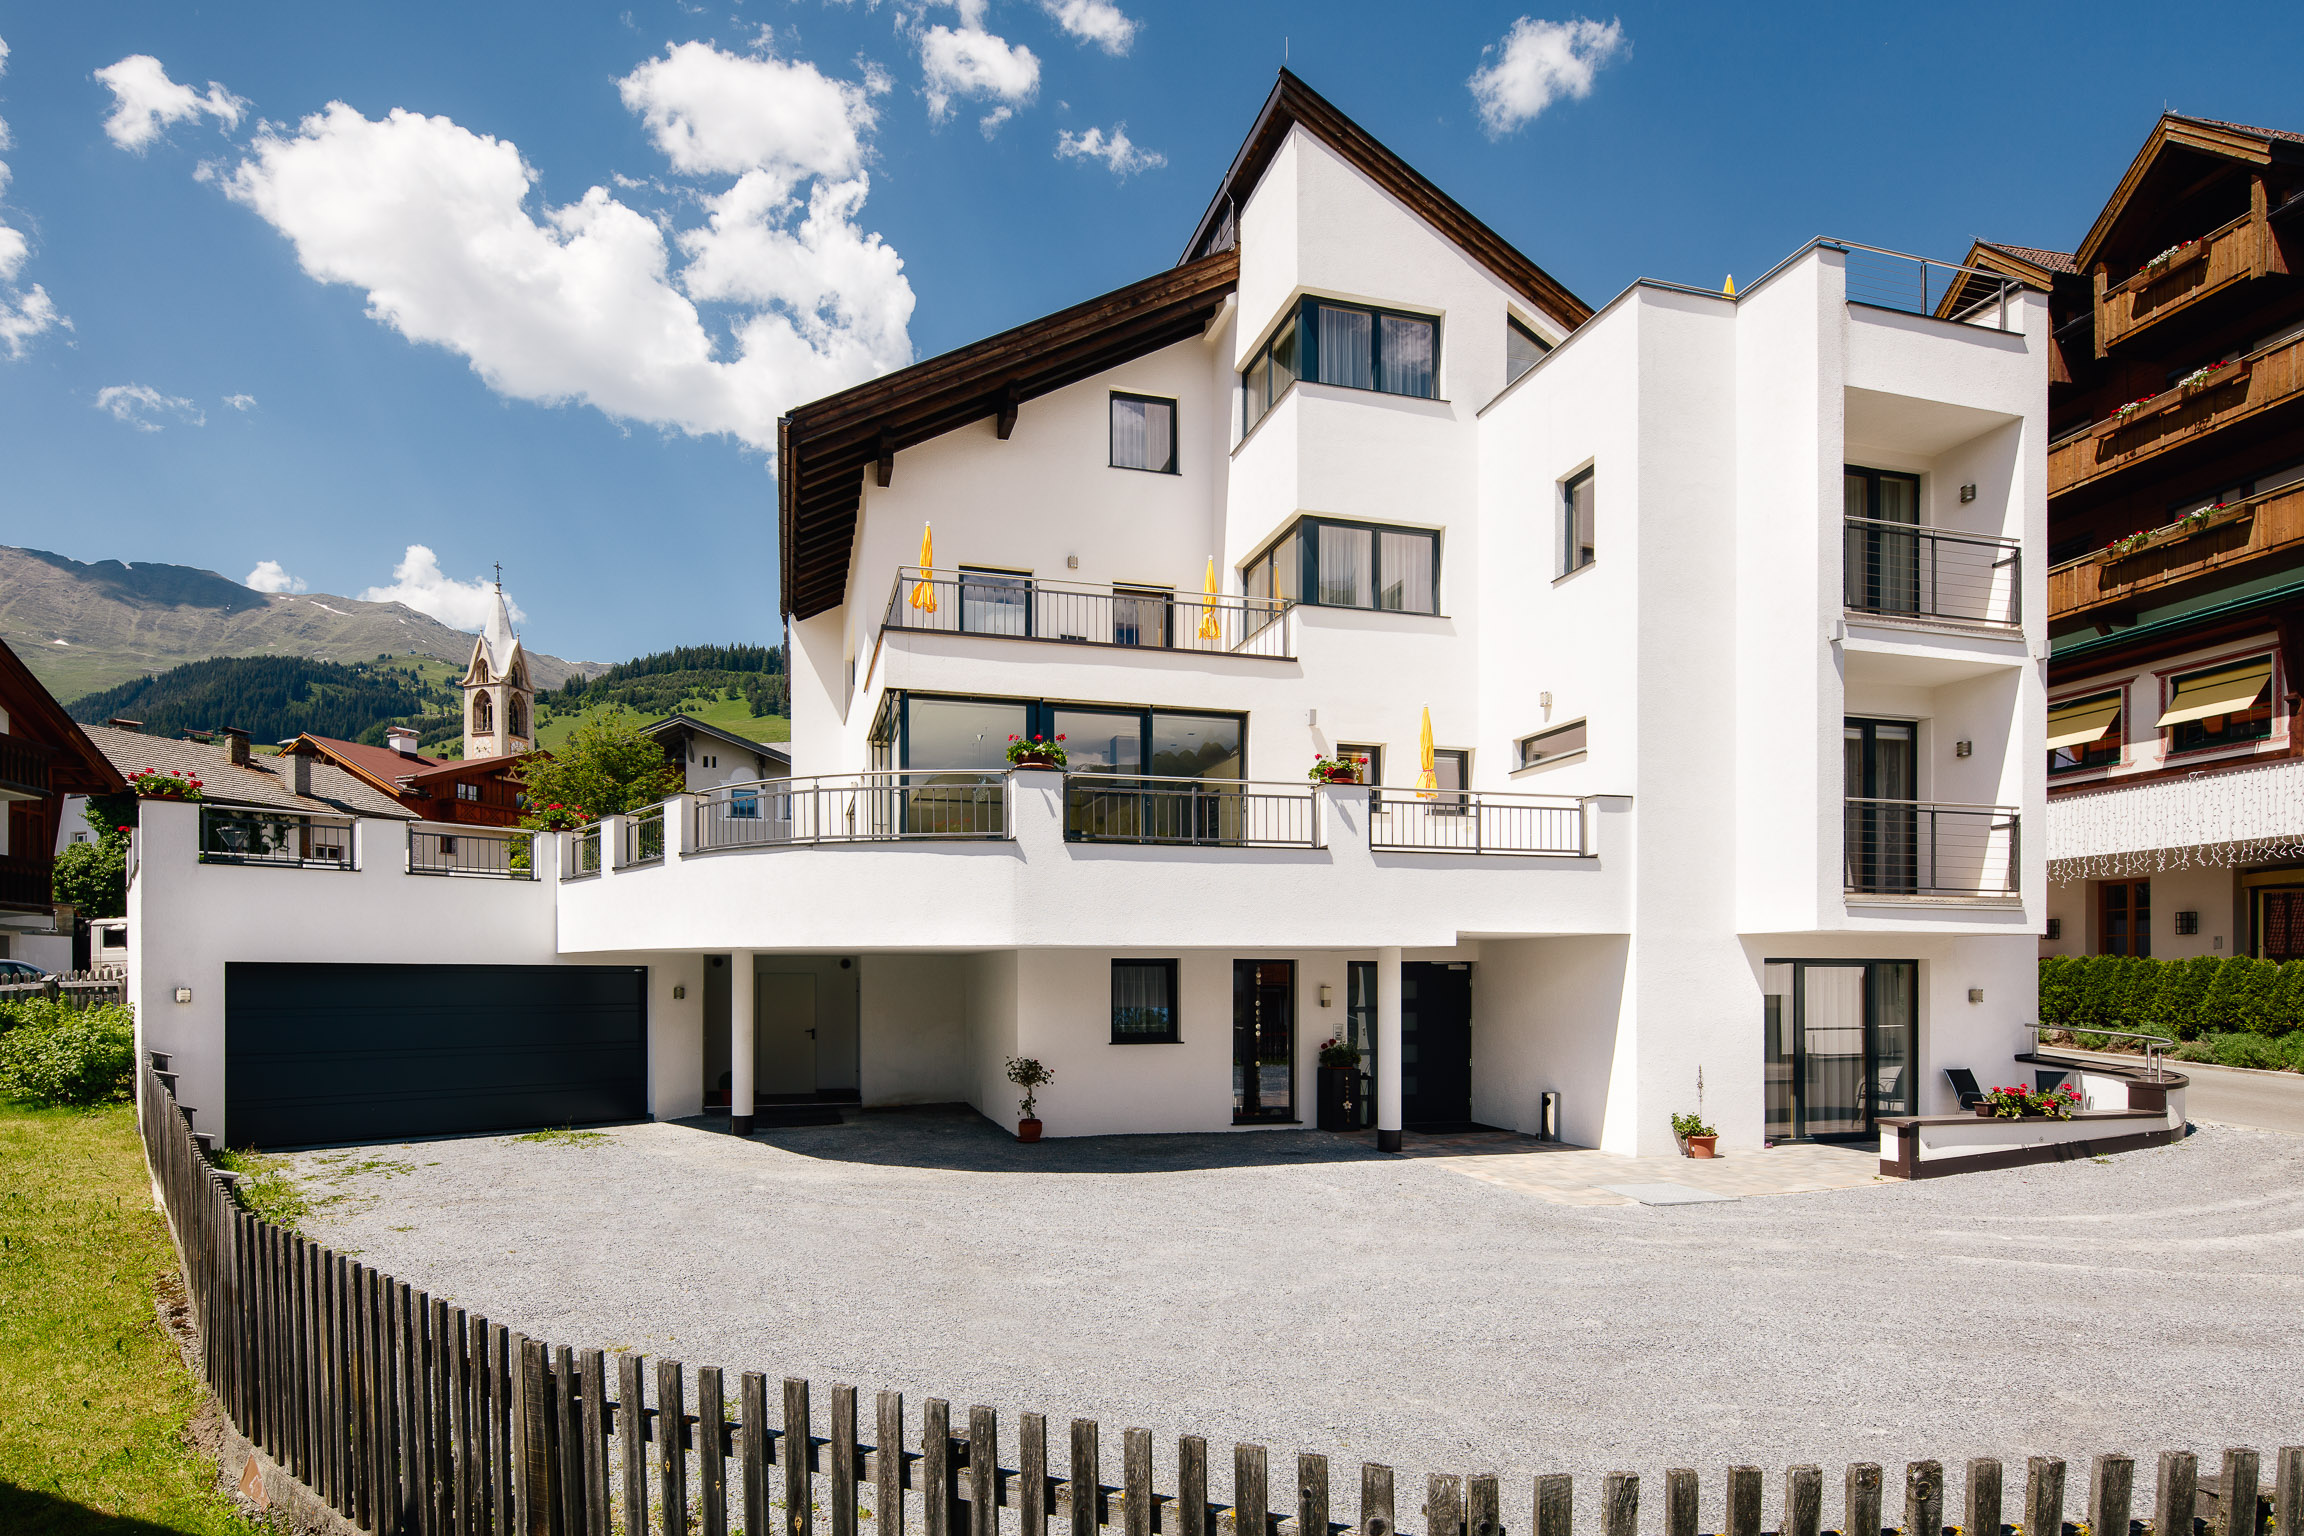 Apartments S-Platzl Haus